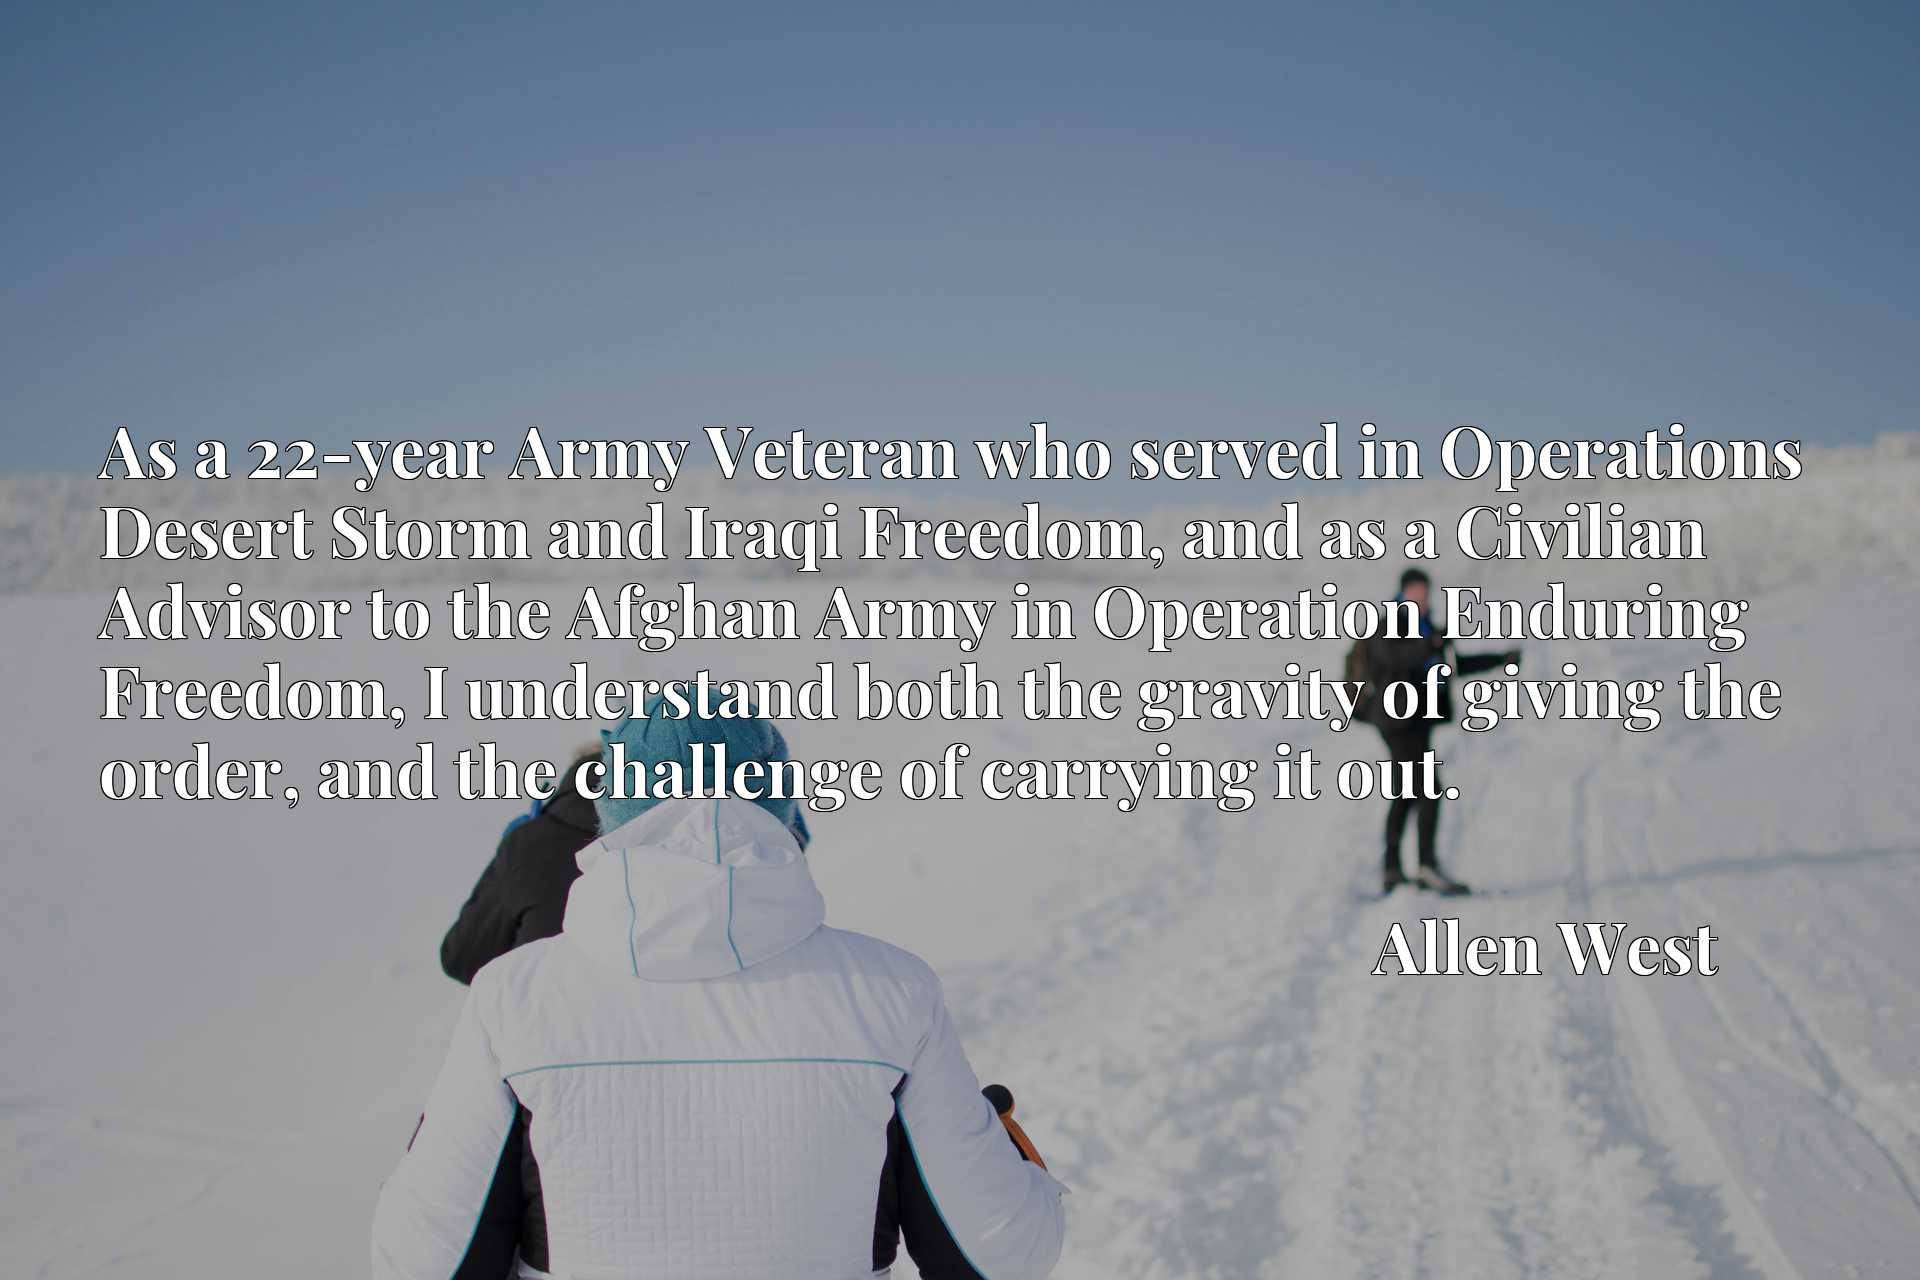 As a 22-year Army Veteran who served in Operations Desert Storm and Iraqi Freedom, and as a Civilian Advisor to the Afghan Army in Operation Enduring Freedom, I understand both the gravity of giving the order, and the challenge of carrying it out.